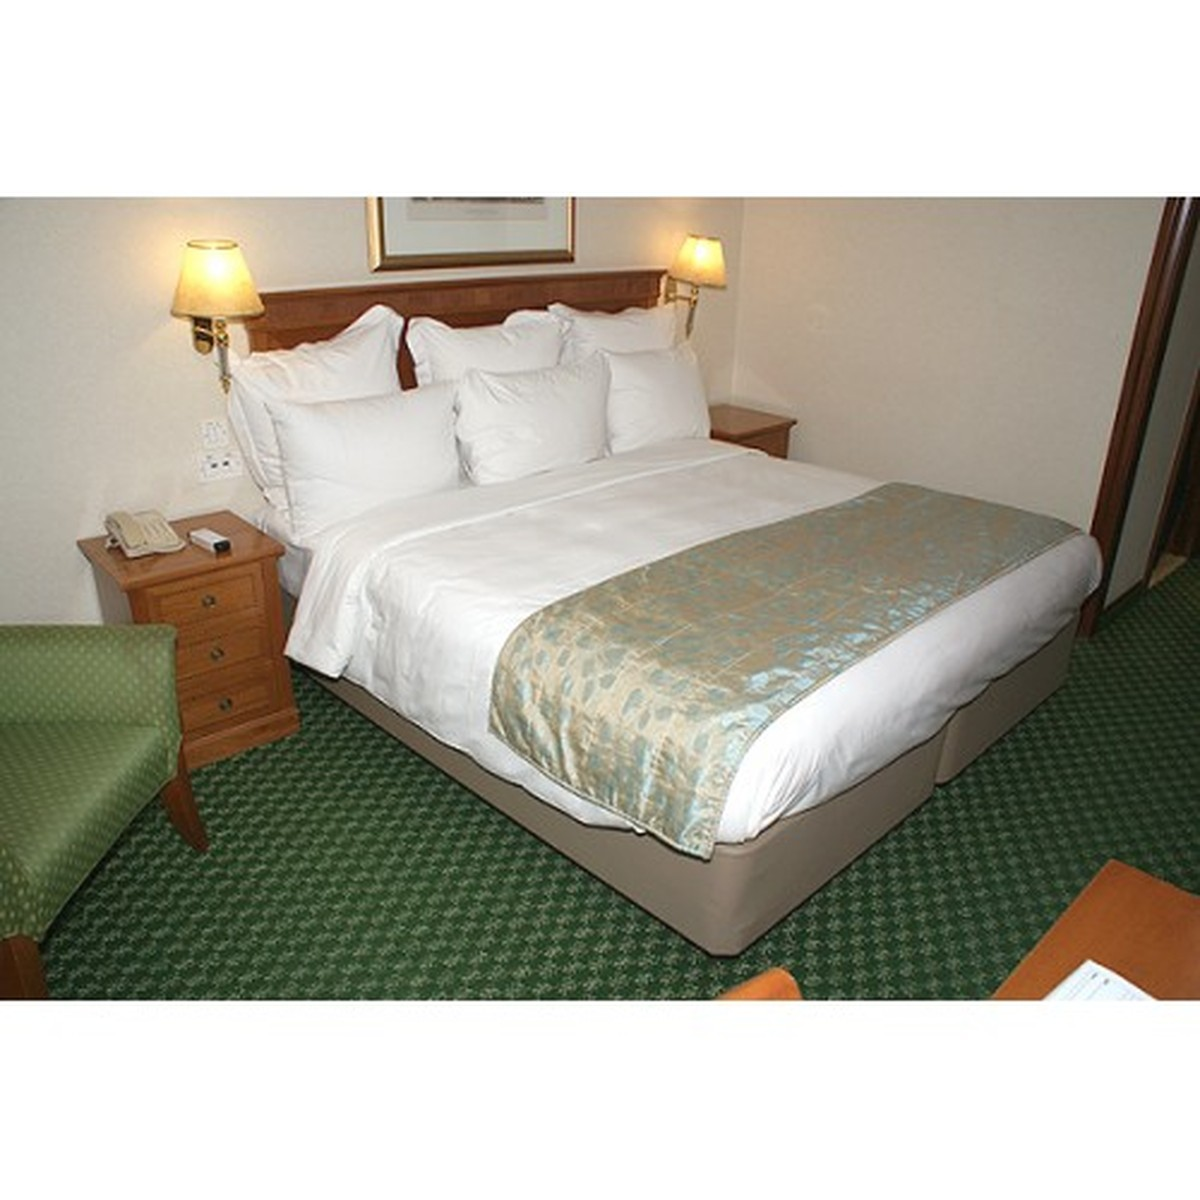 Secondhand hotel furniture mayfair furniture caterfair for Cheap furniture delivery